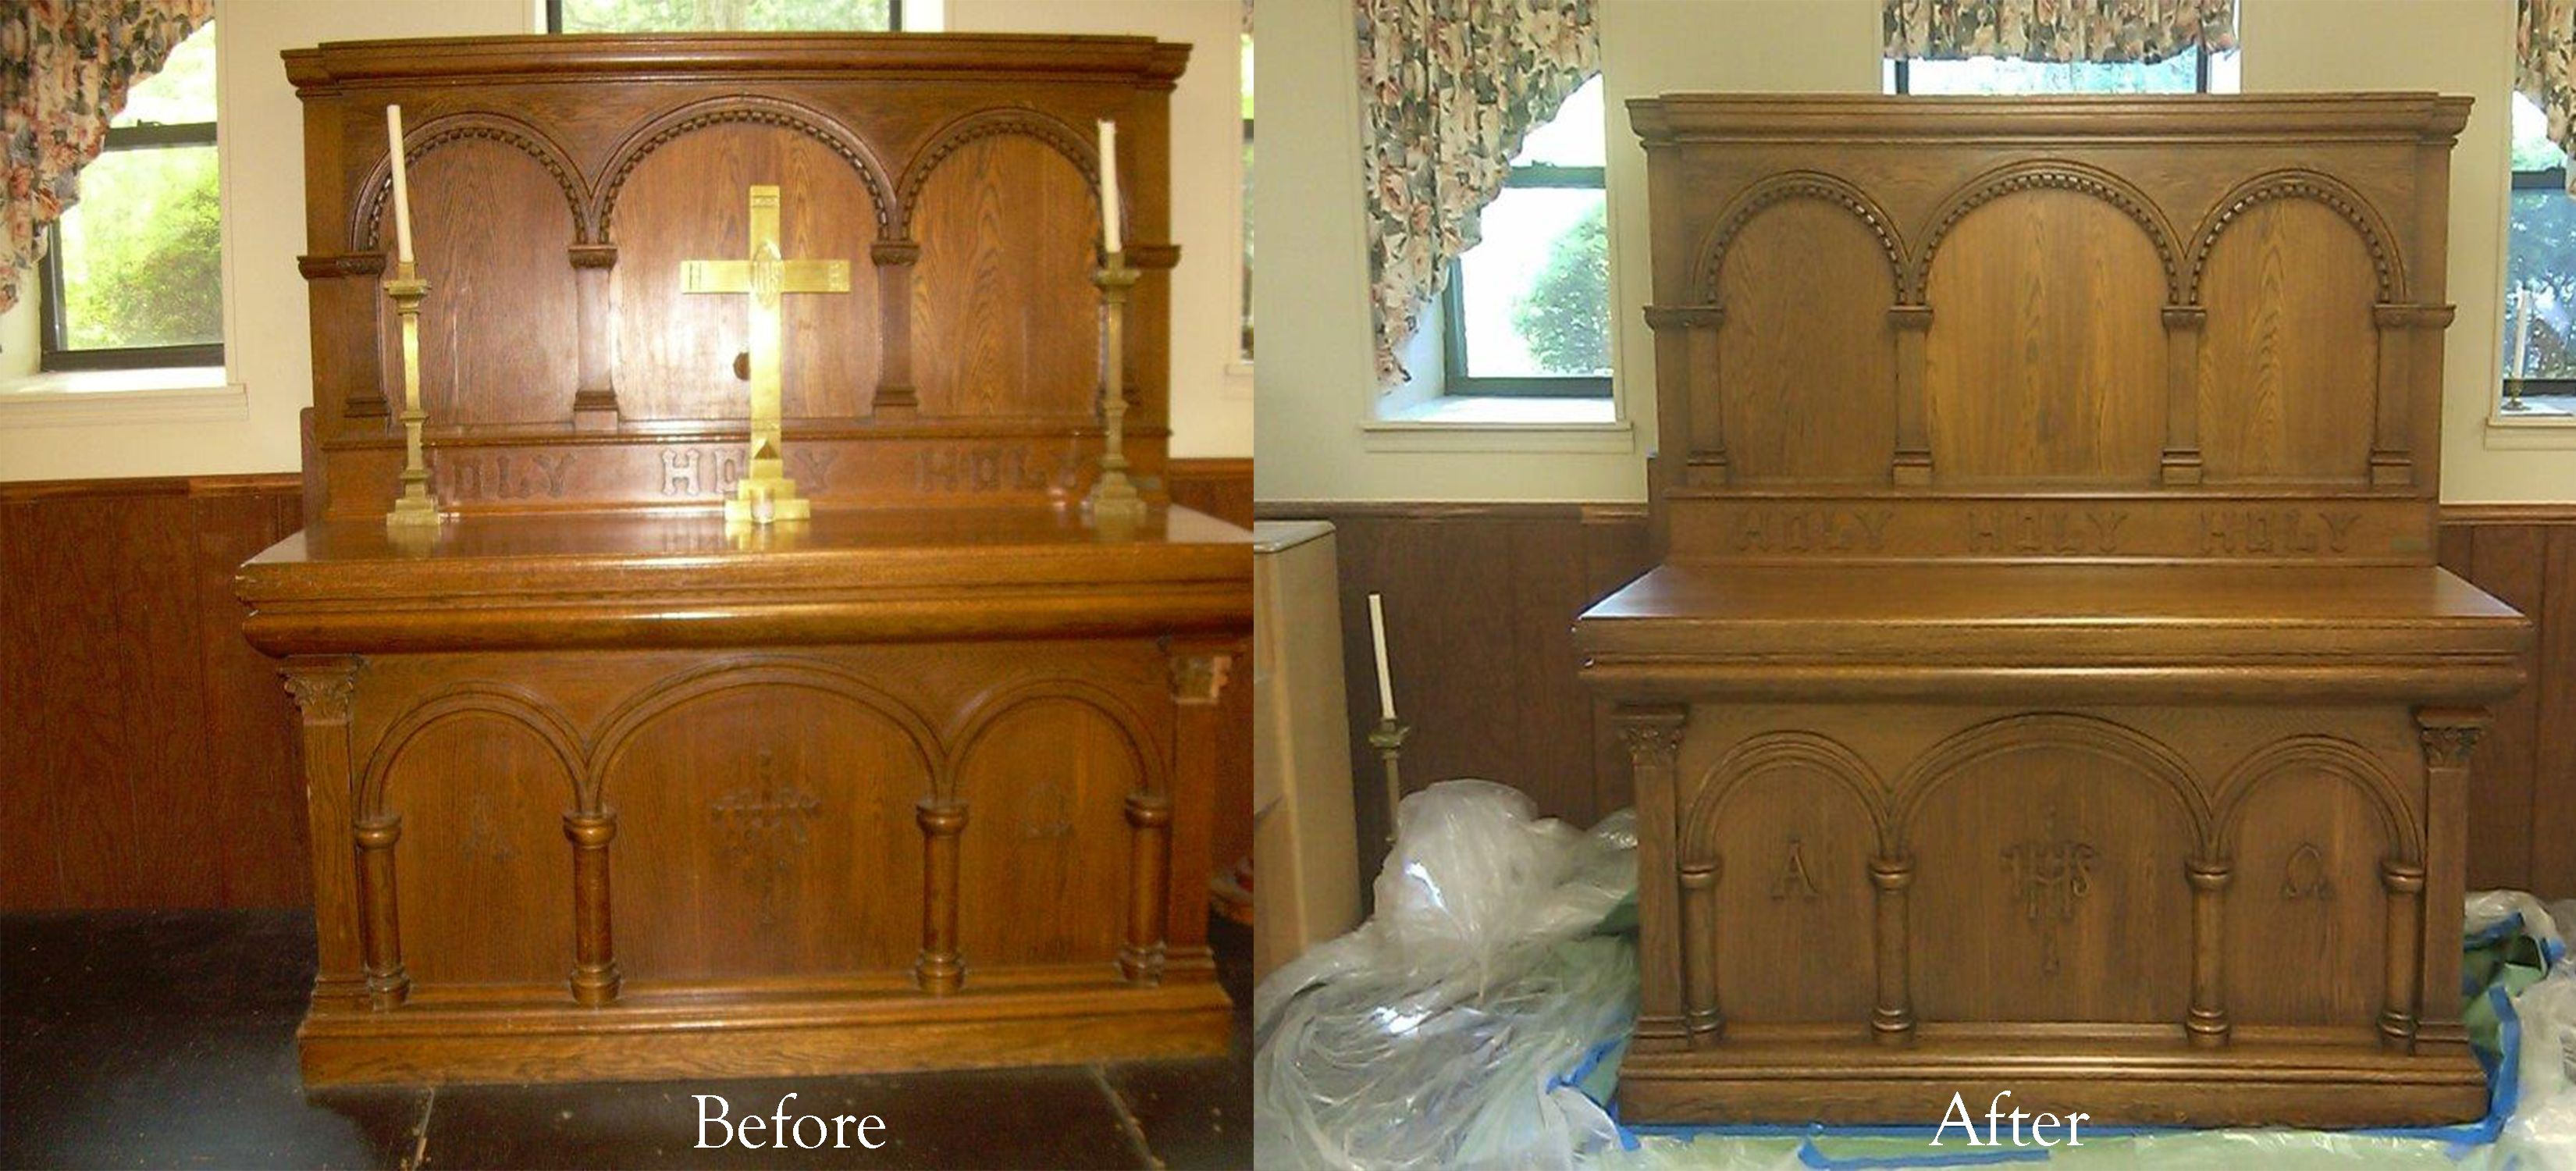 Before And After Photos From Good Shepherd In Pearl River Ny Work Performed By Furniture Medic By Woodlord Restorations Furniture Makeover Furniture Home